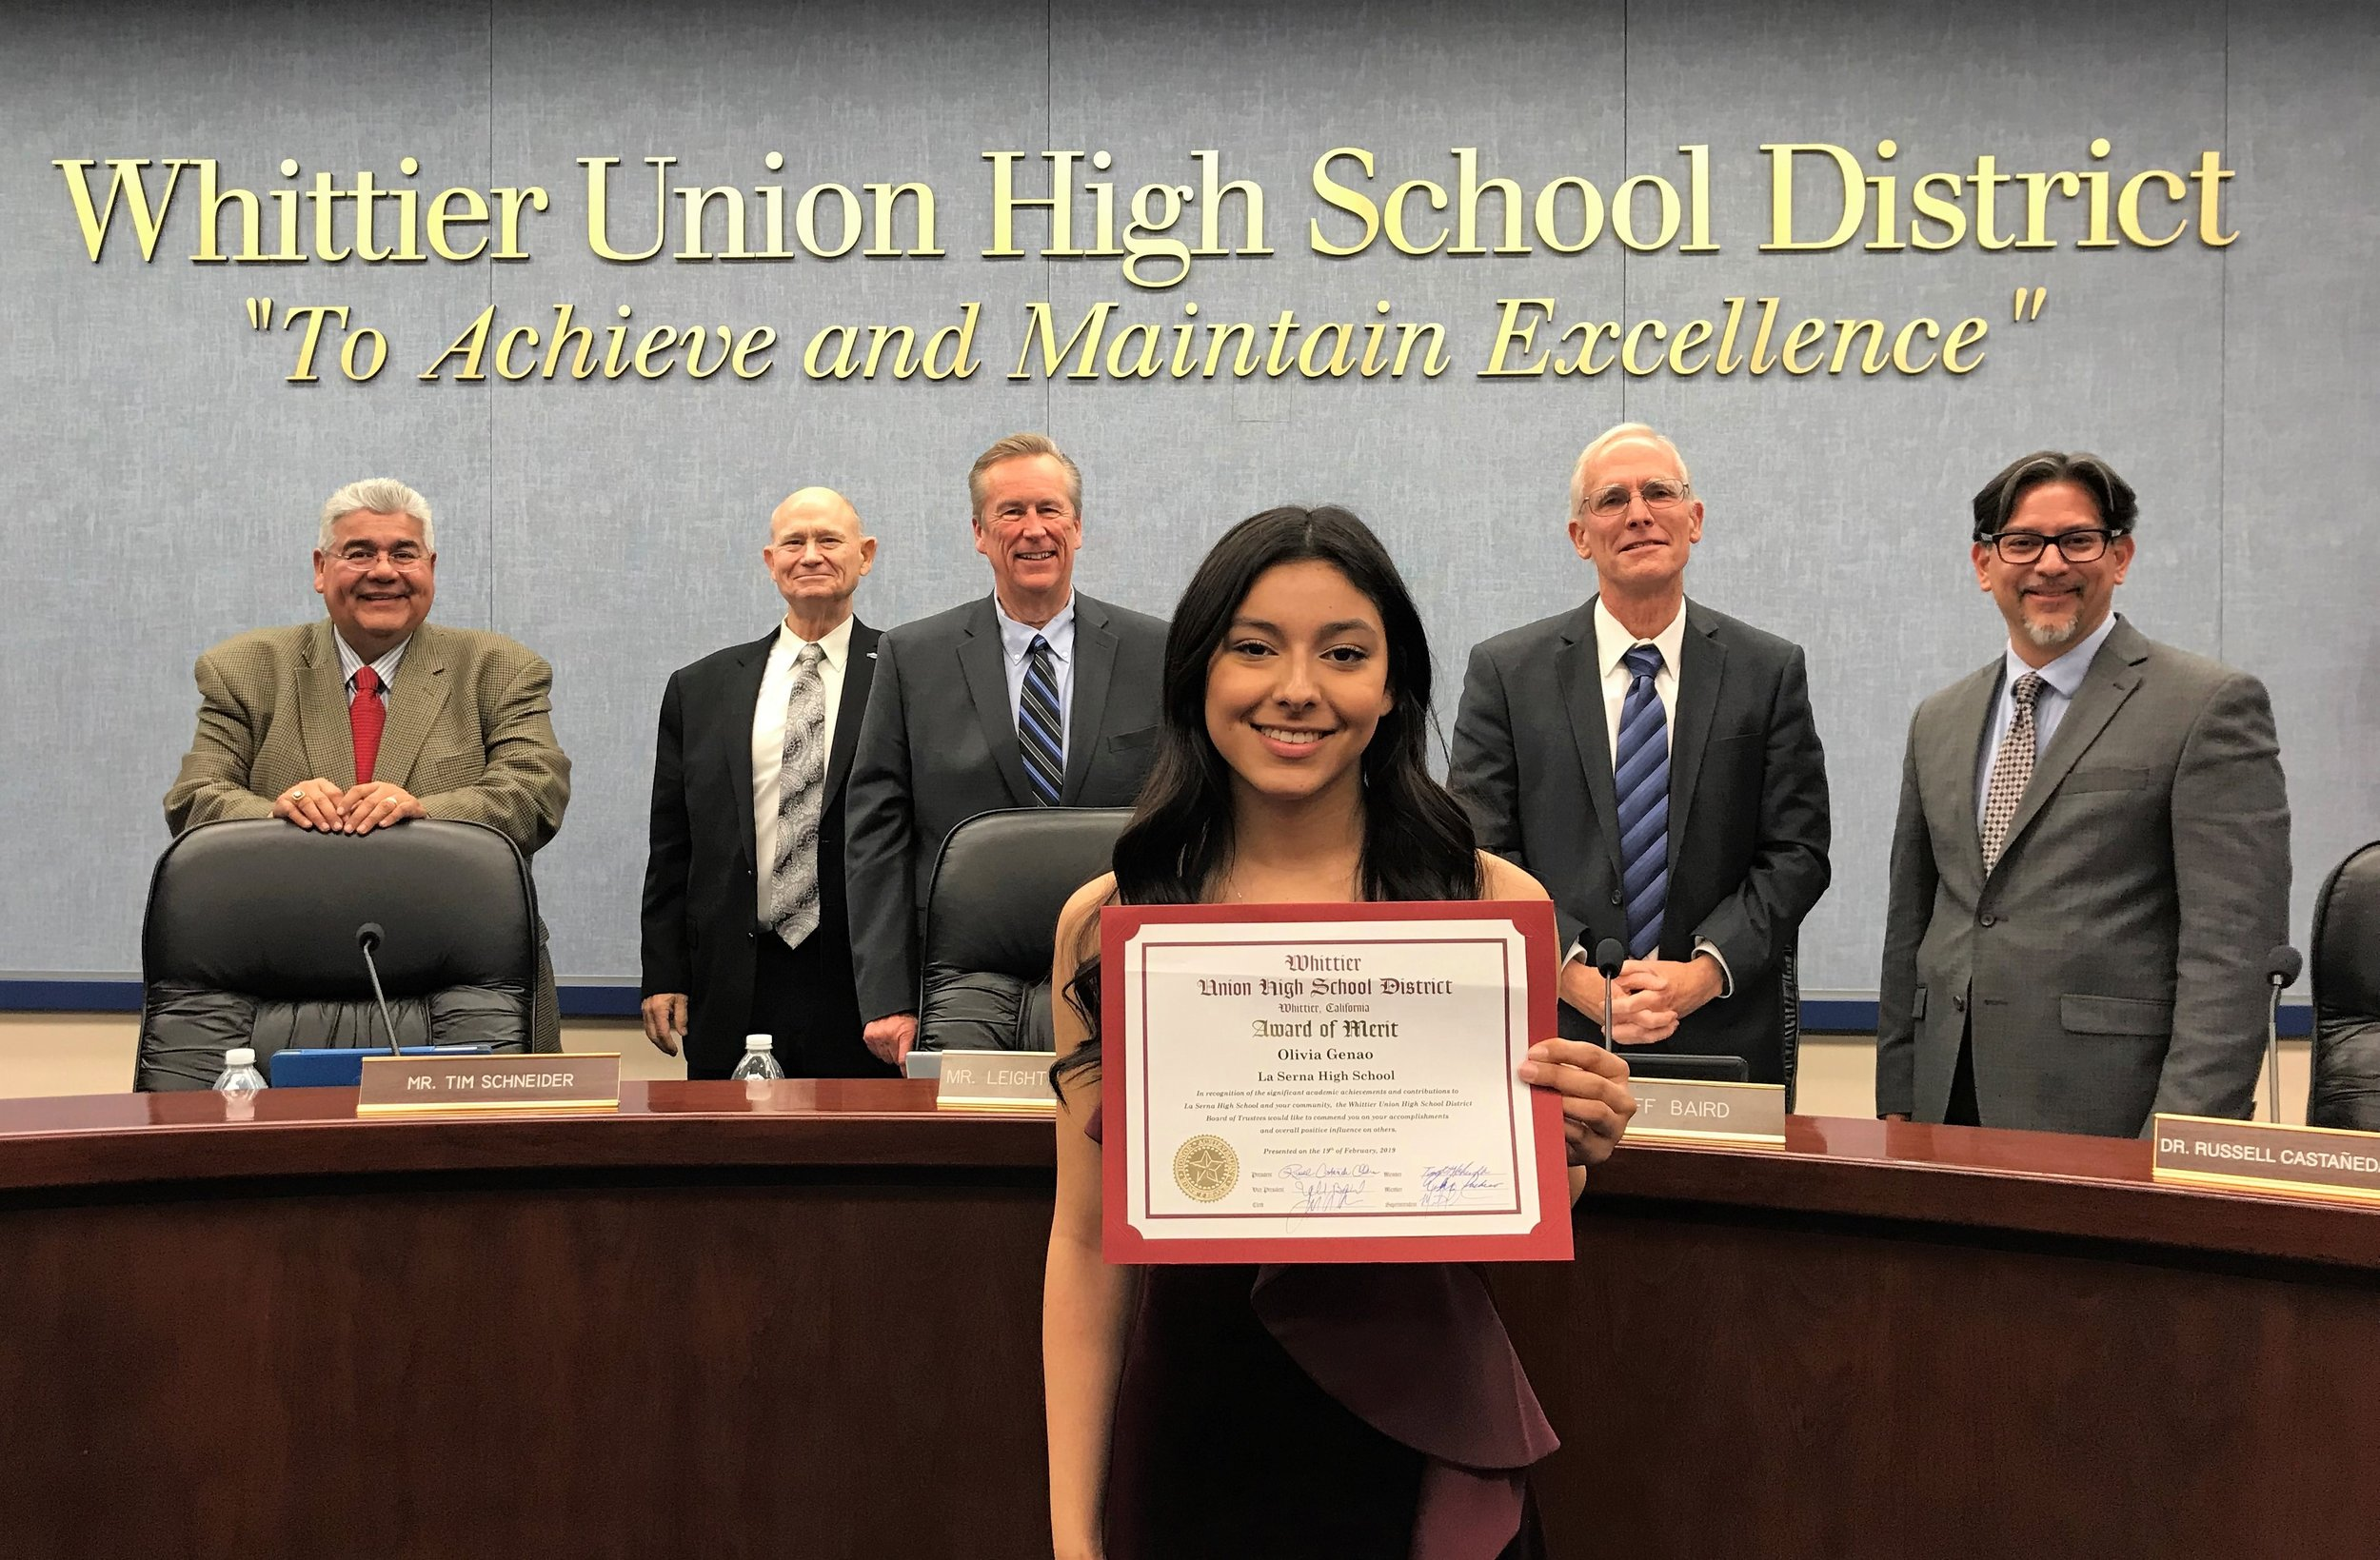 La Serna High School senior Olivia Genao, who gained early admission to Yale University, was honored with an Award of Merit by the Whittier Union Board of Trustees on Feb. 19. Pictured are Genao and Board of Trustees members Dr. Ralph Pacheco, left, Tim Schneider, Clerk Leighton Anderson, Vice President Jeff Baird and President Dr. Russell Castañeda-Calleros.